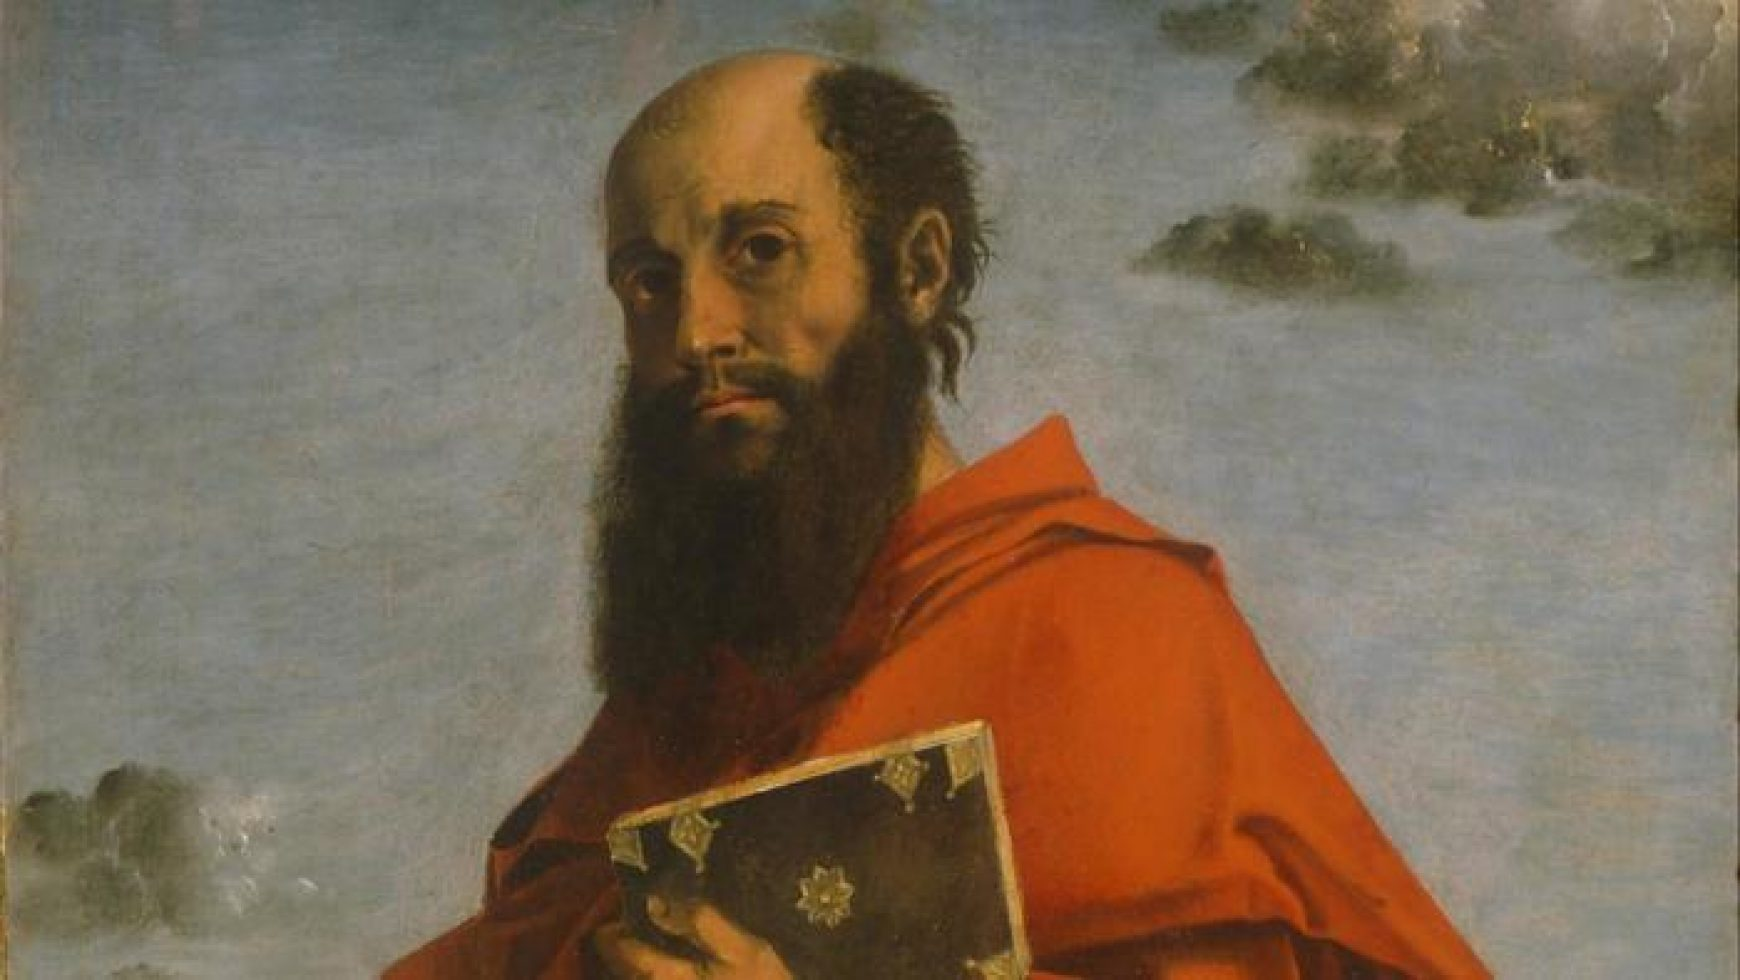 St. Paul on our Human Nature